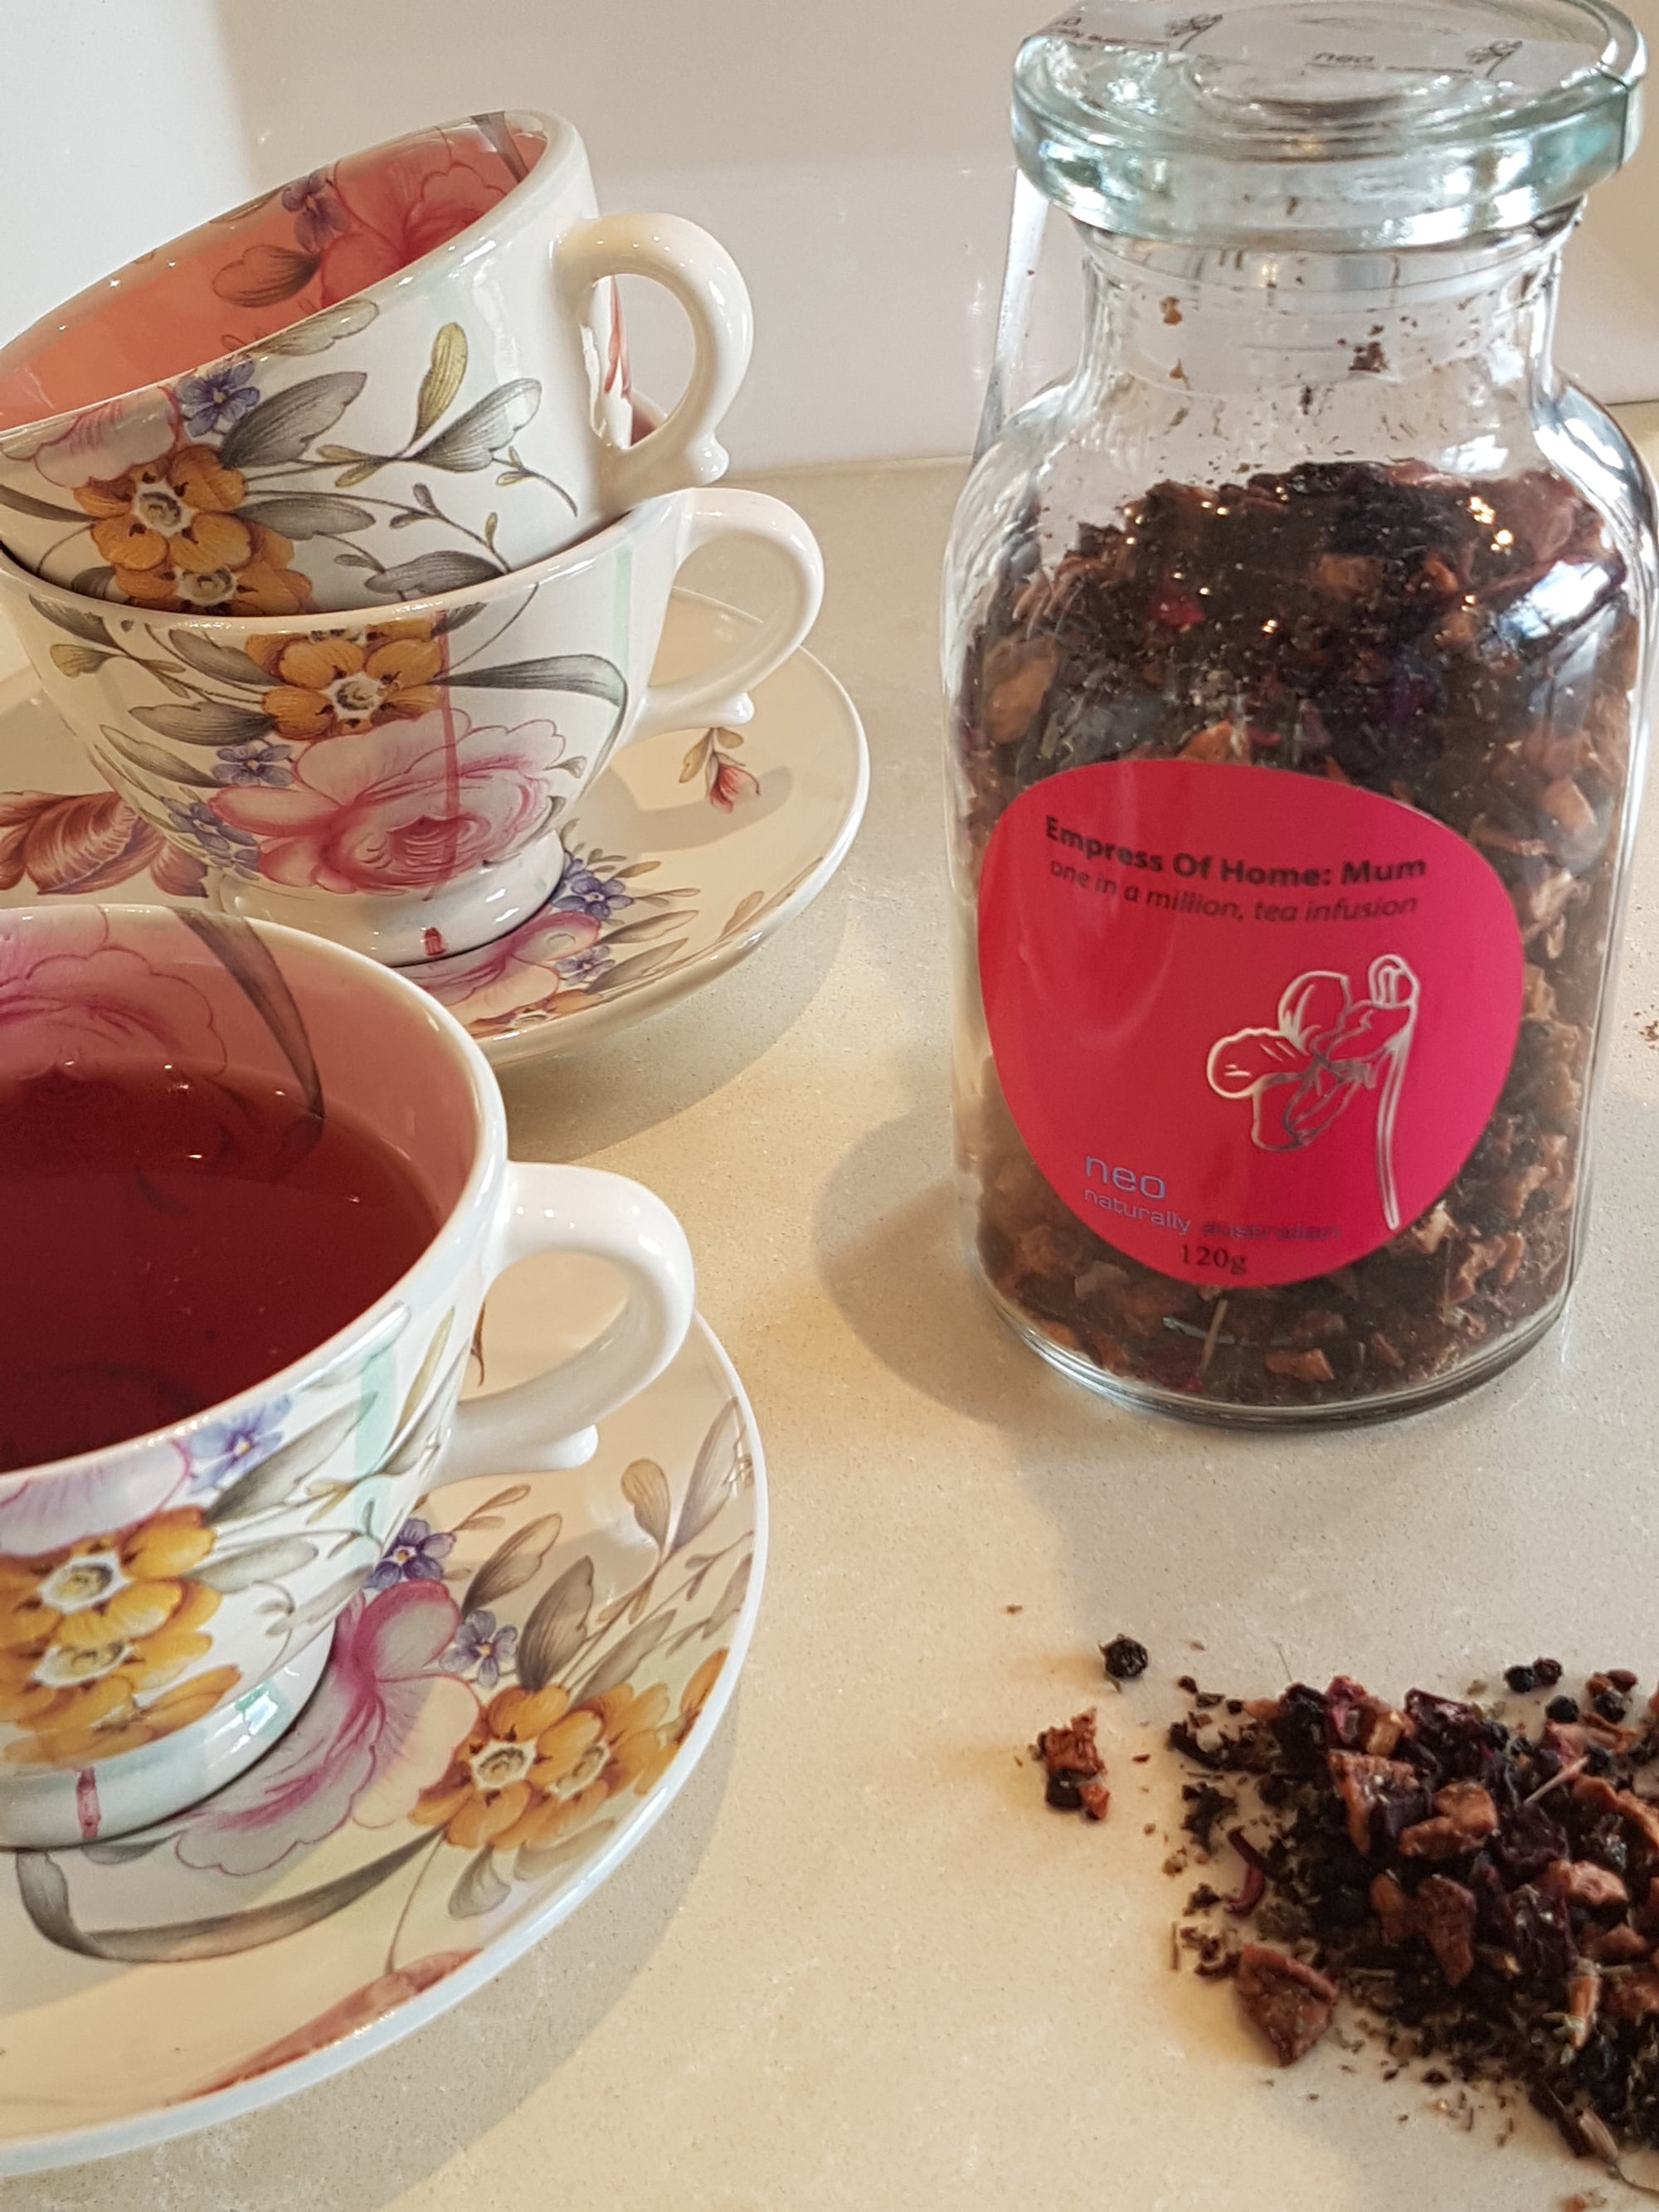 Berry Herbal Tea Jar 120g - Berrylicious